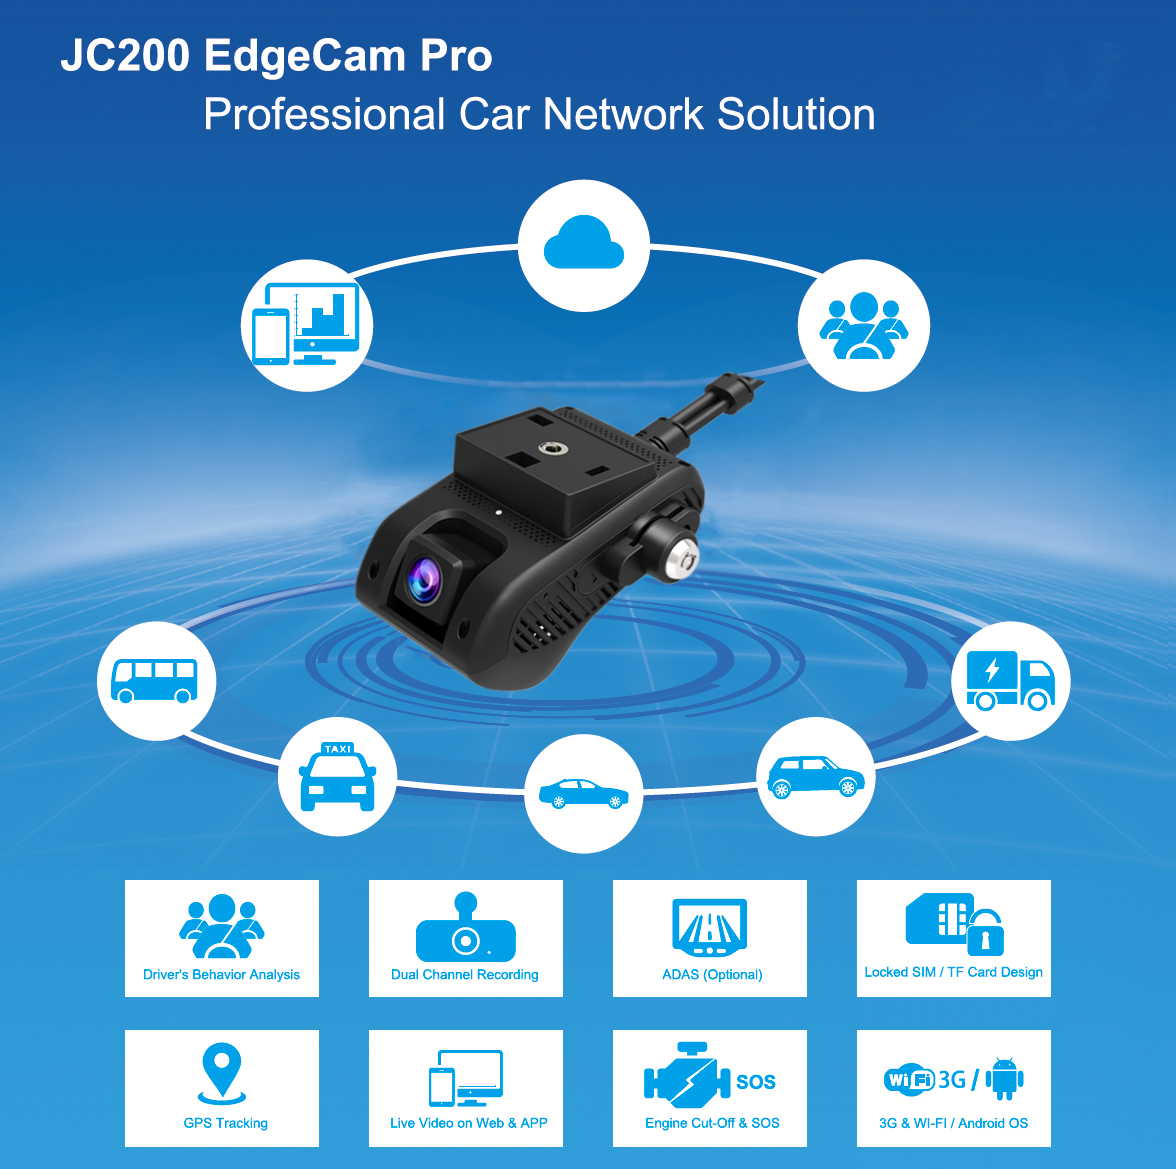 US $167 99 16% OFF|Jimi JC200 EdgeCam Pro 3G Car DVR Dash Camra Car Camera  With HD 1080P Dual Camera GPS Tracker Remote Monitoring Live Streaming-in